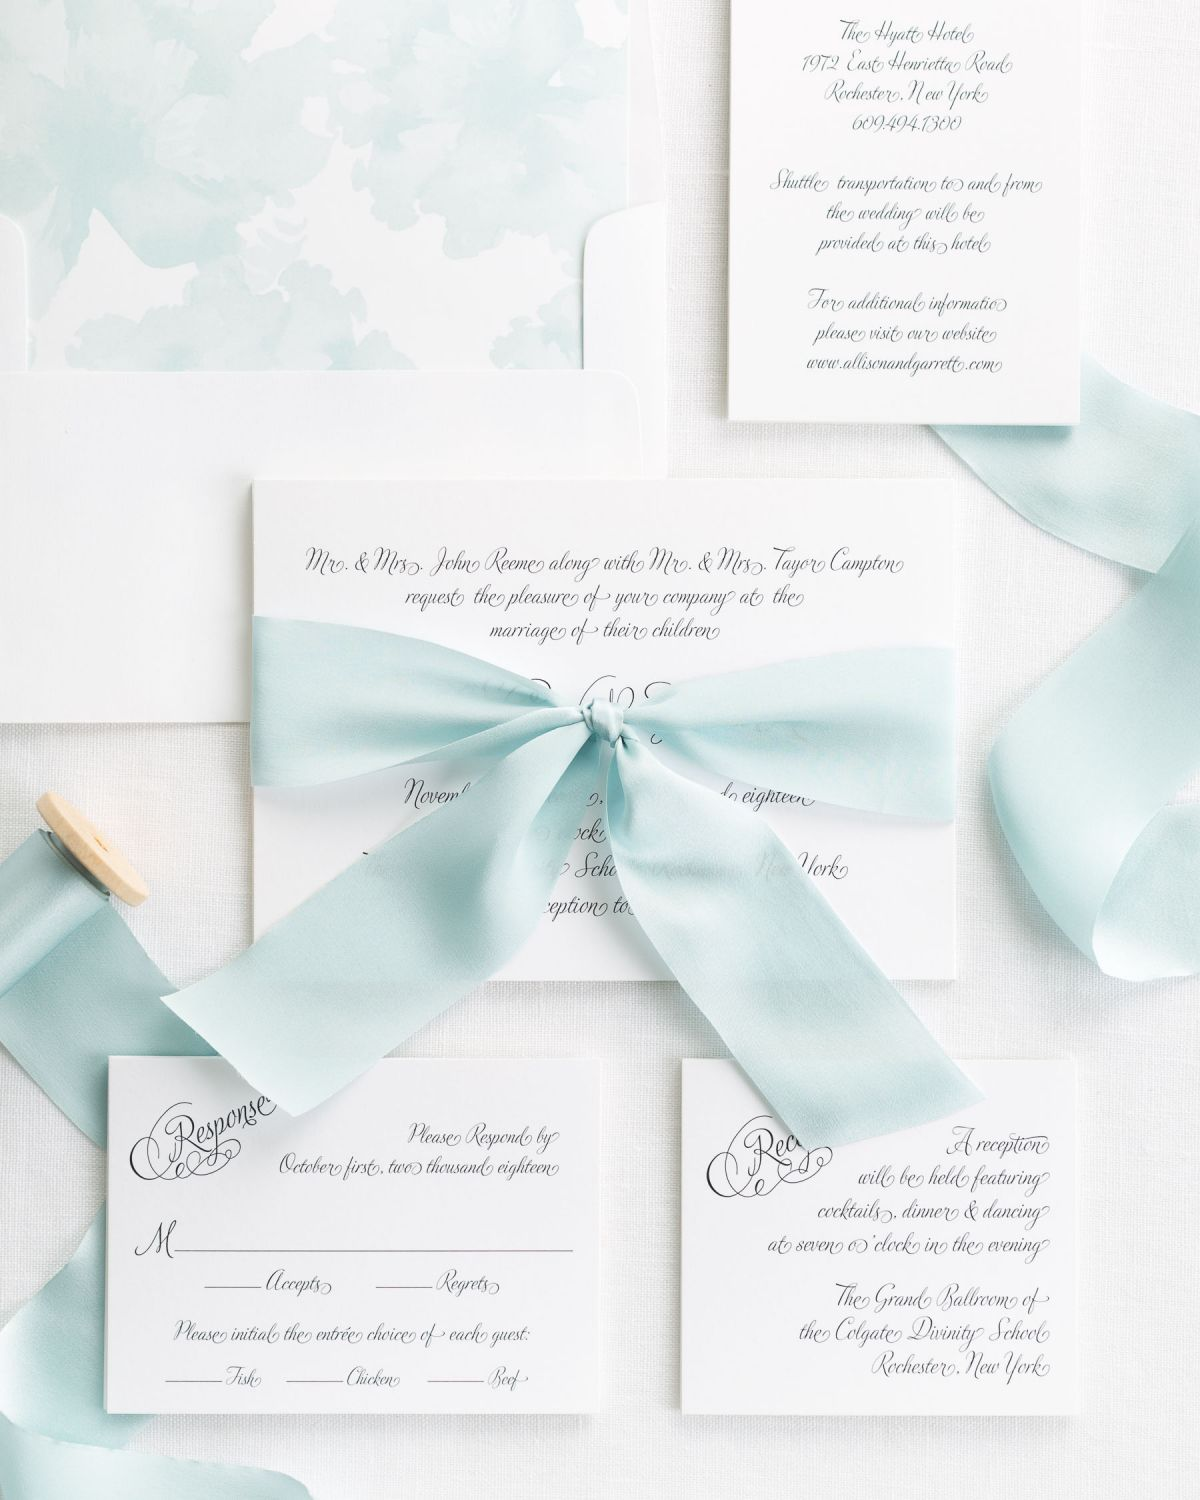 Complete Wedding Invnitations with Mint Ribbon and Enclosures